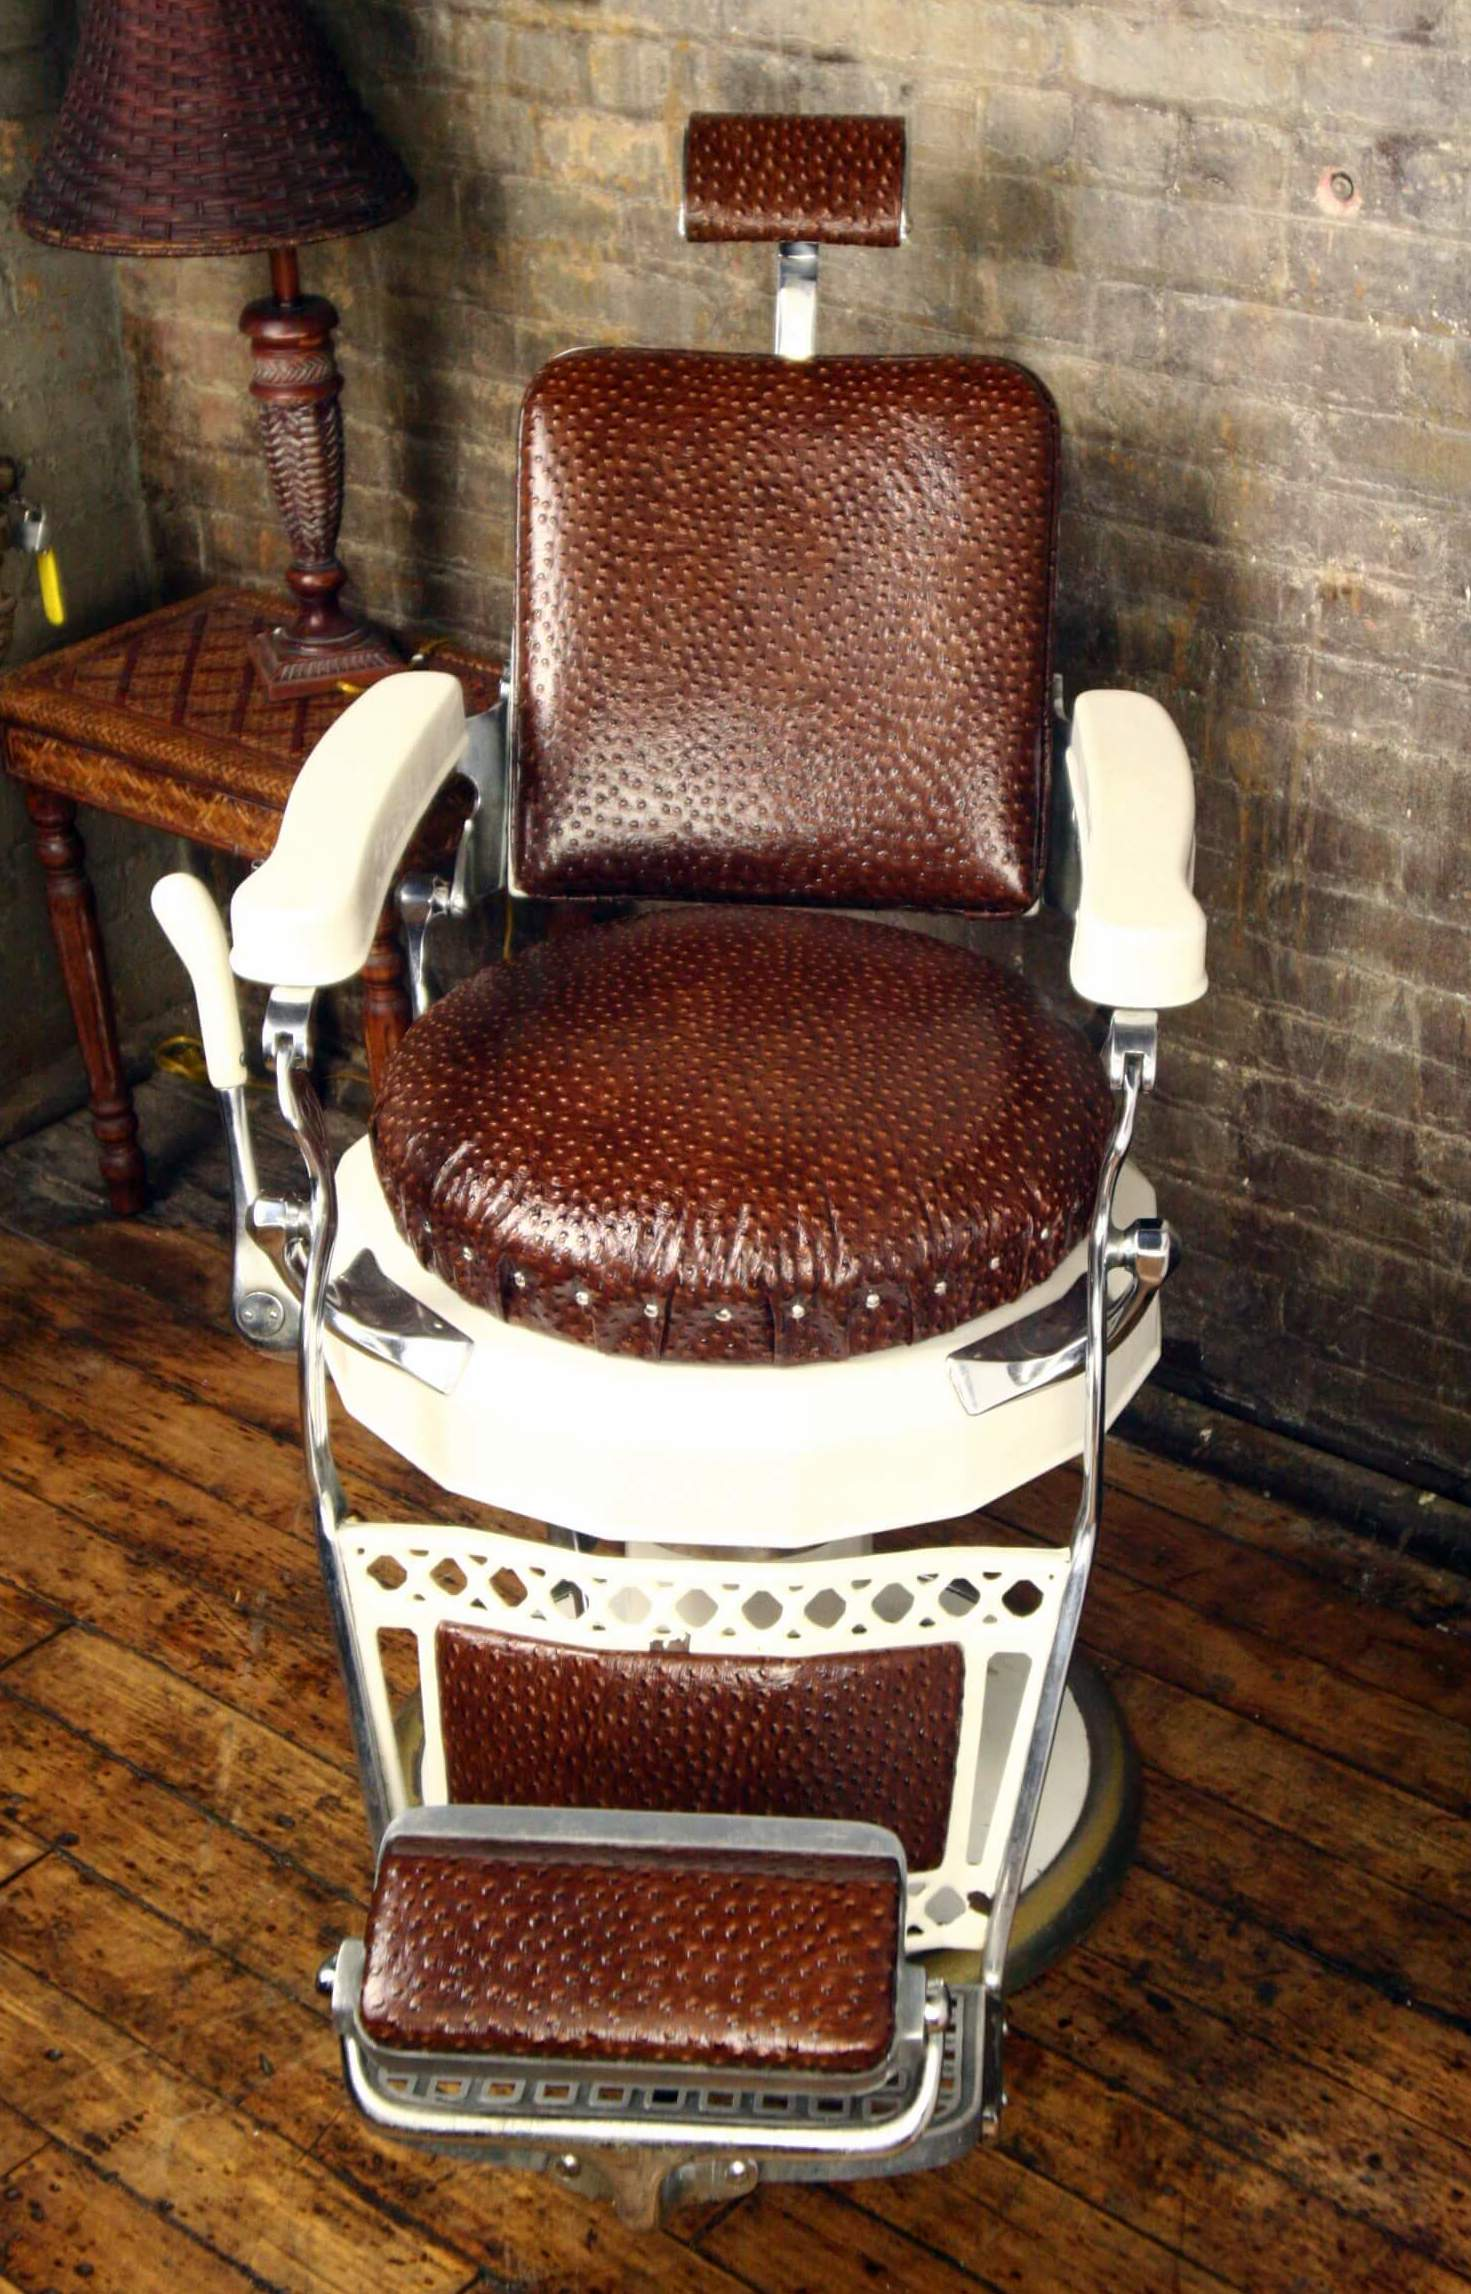 Seville Barber Chair – - Belvedere Barber Chairs Reviewed - The Pros And Cons - Furnish & Style